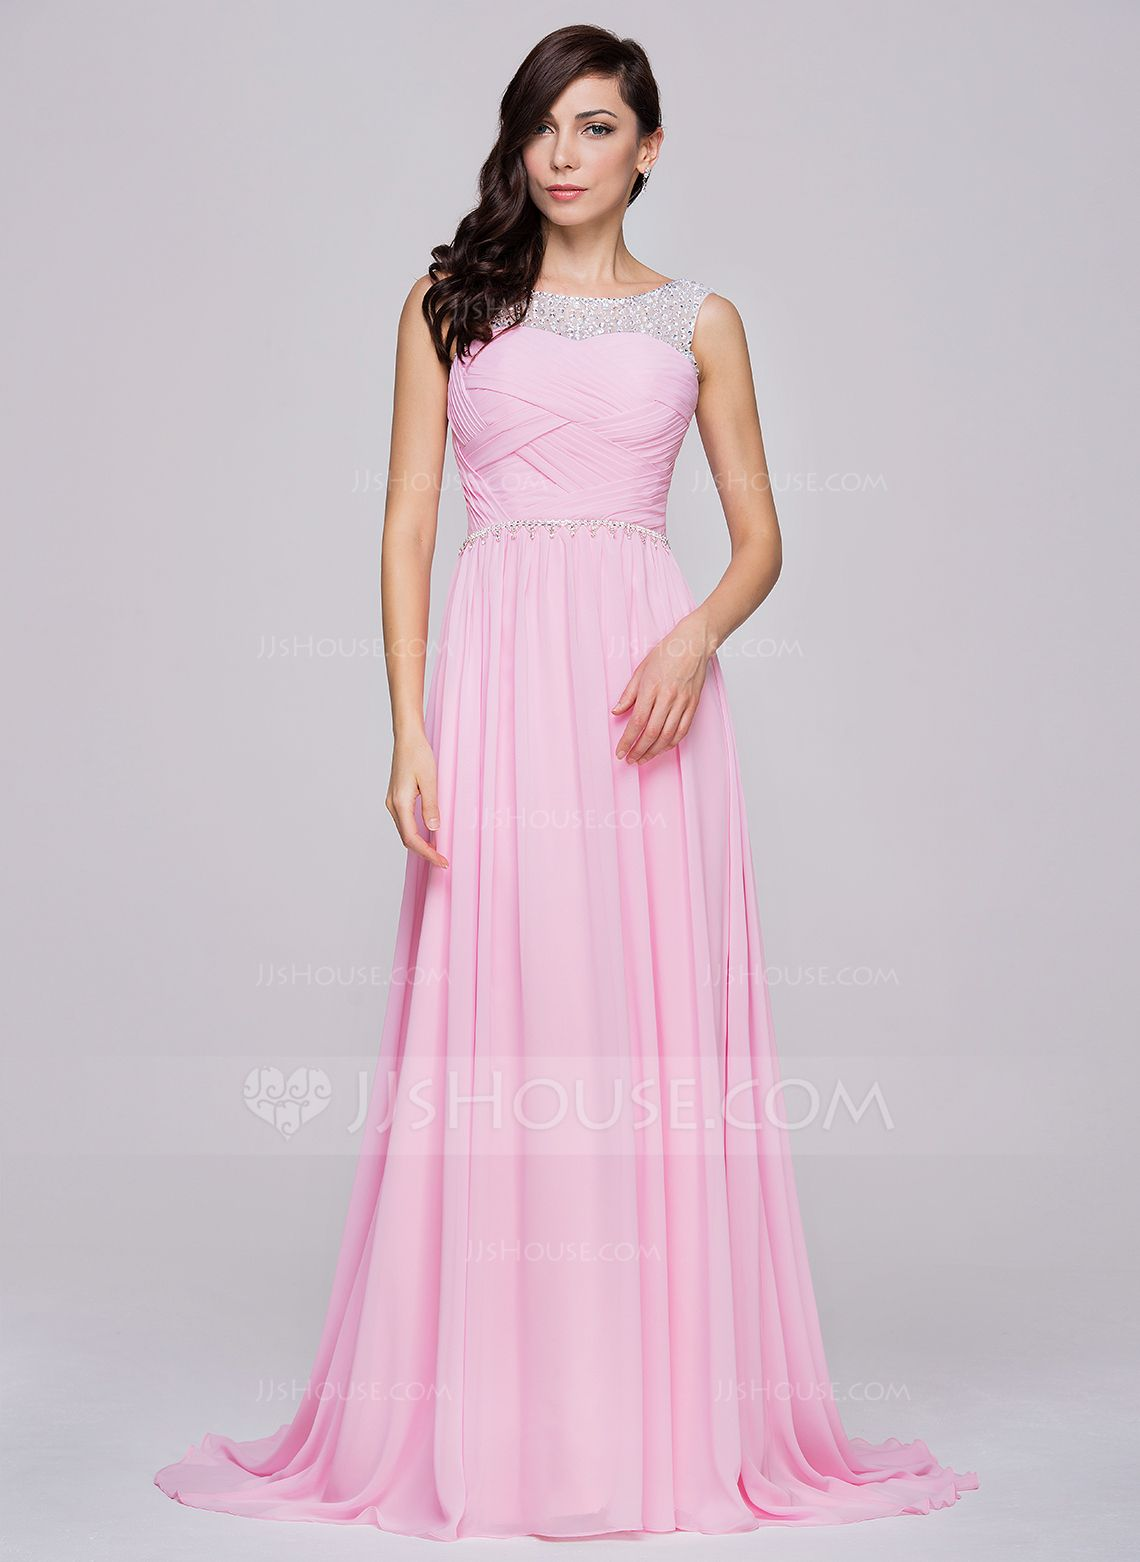 A-Line/Princess Scoop Neck Court Train Chiffon Prom Dress With ...